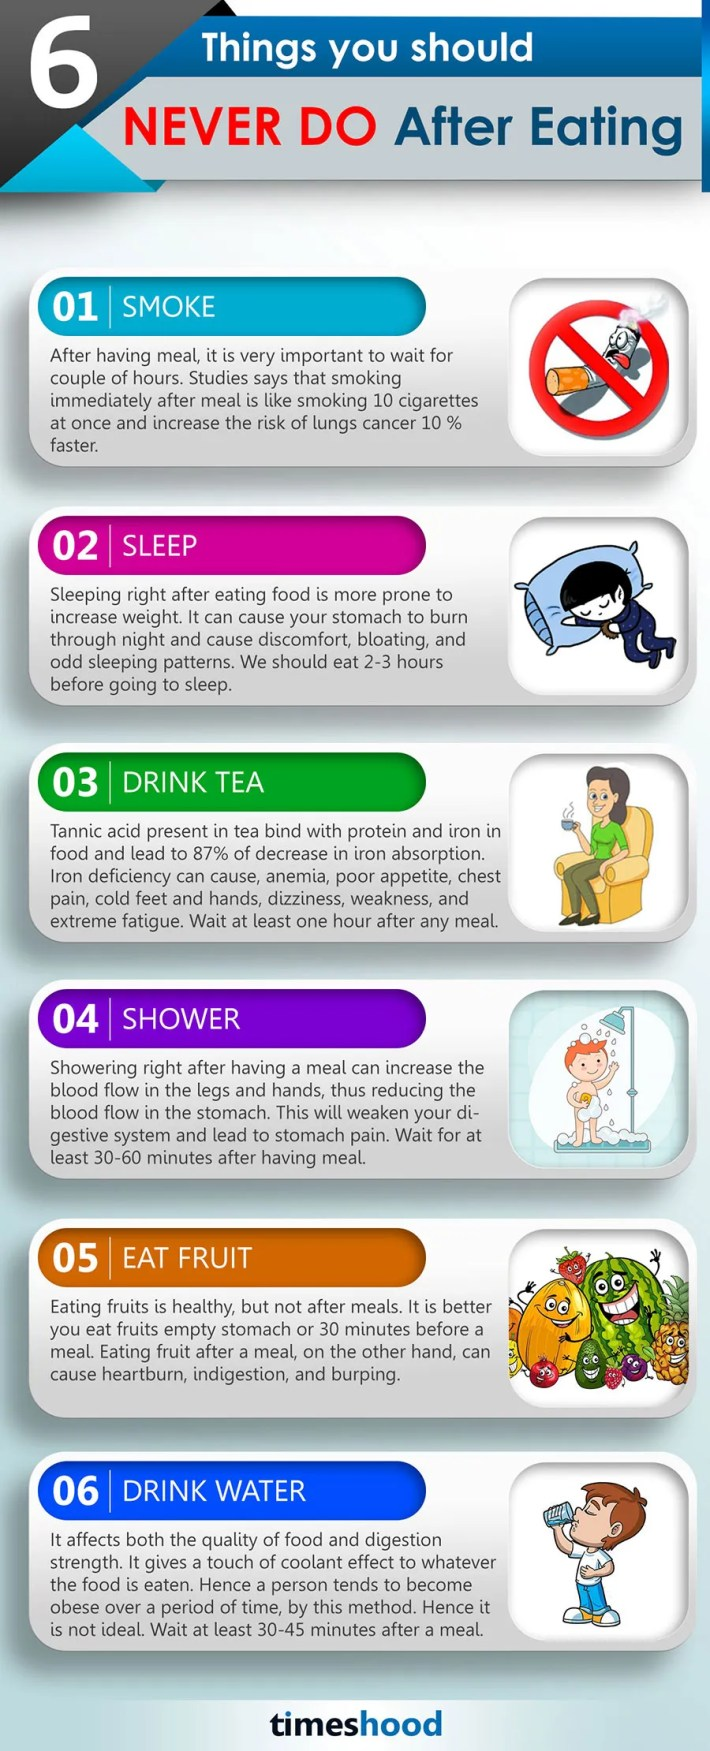 6 Things Never do after Eating Food